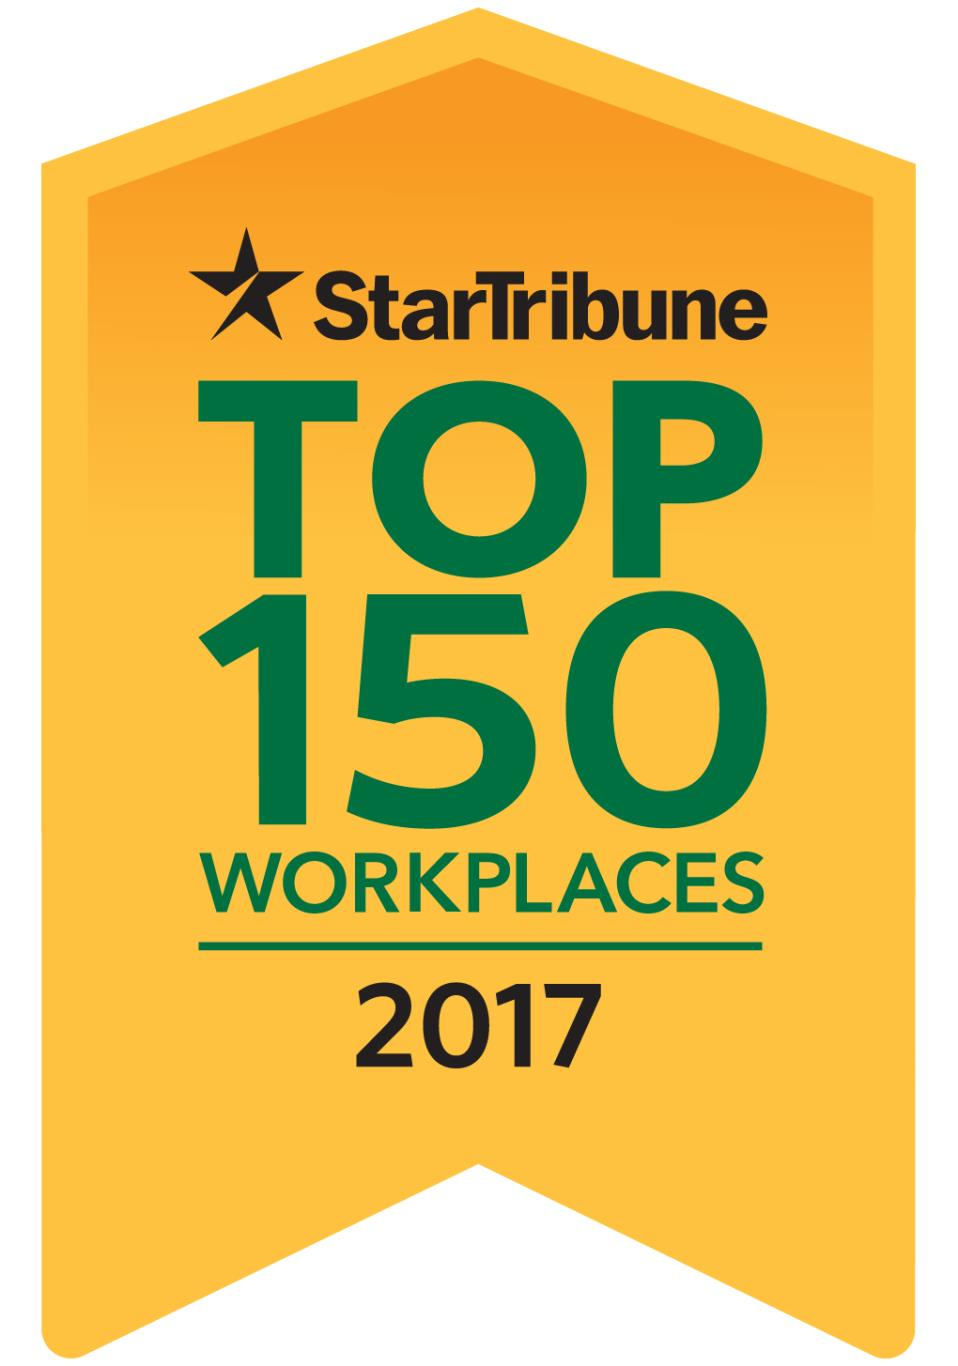 2017 Top 150 Workplaces